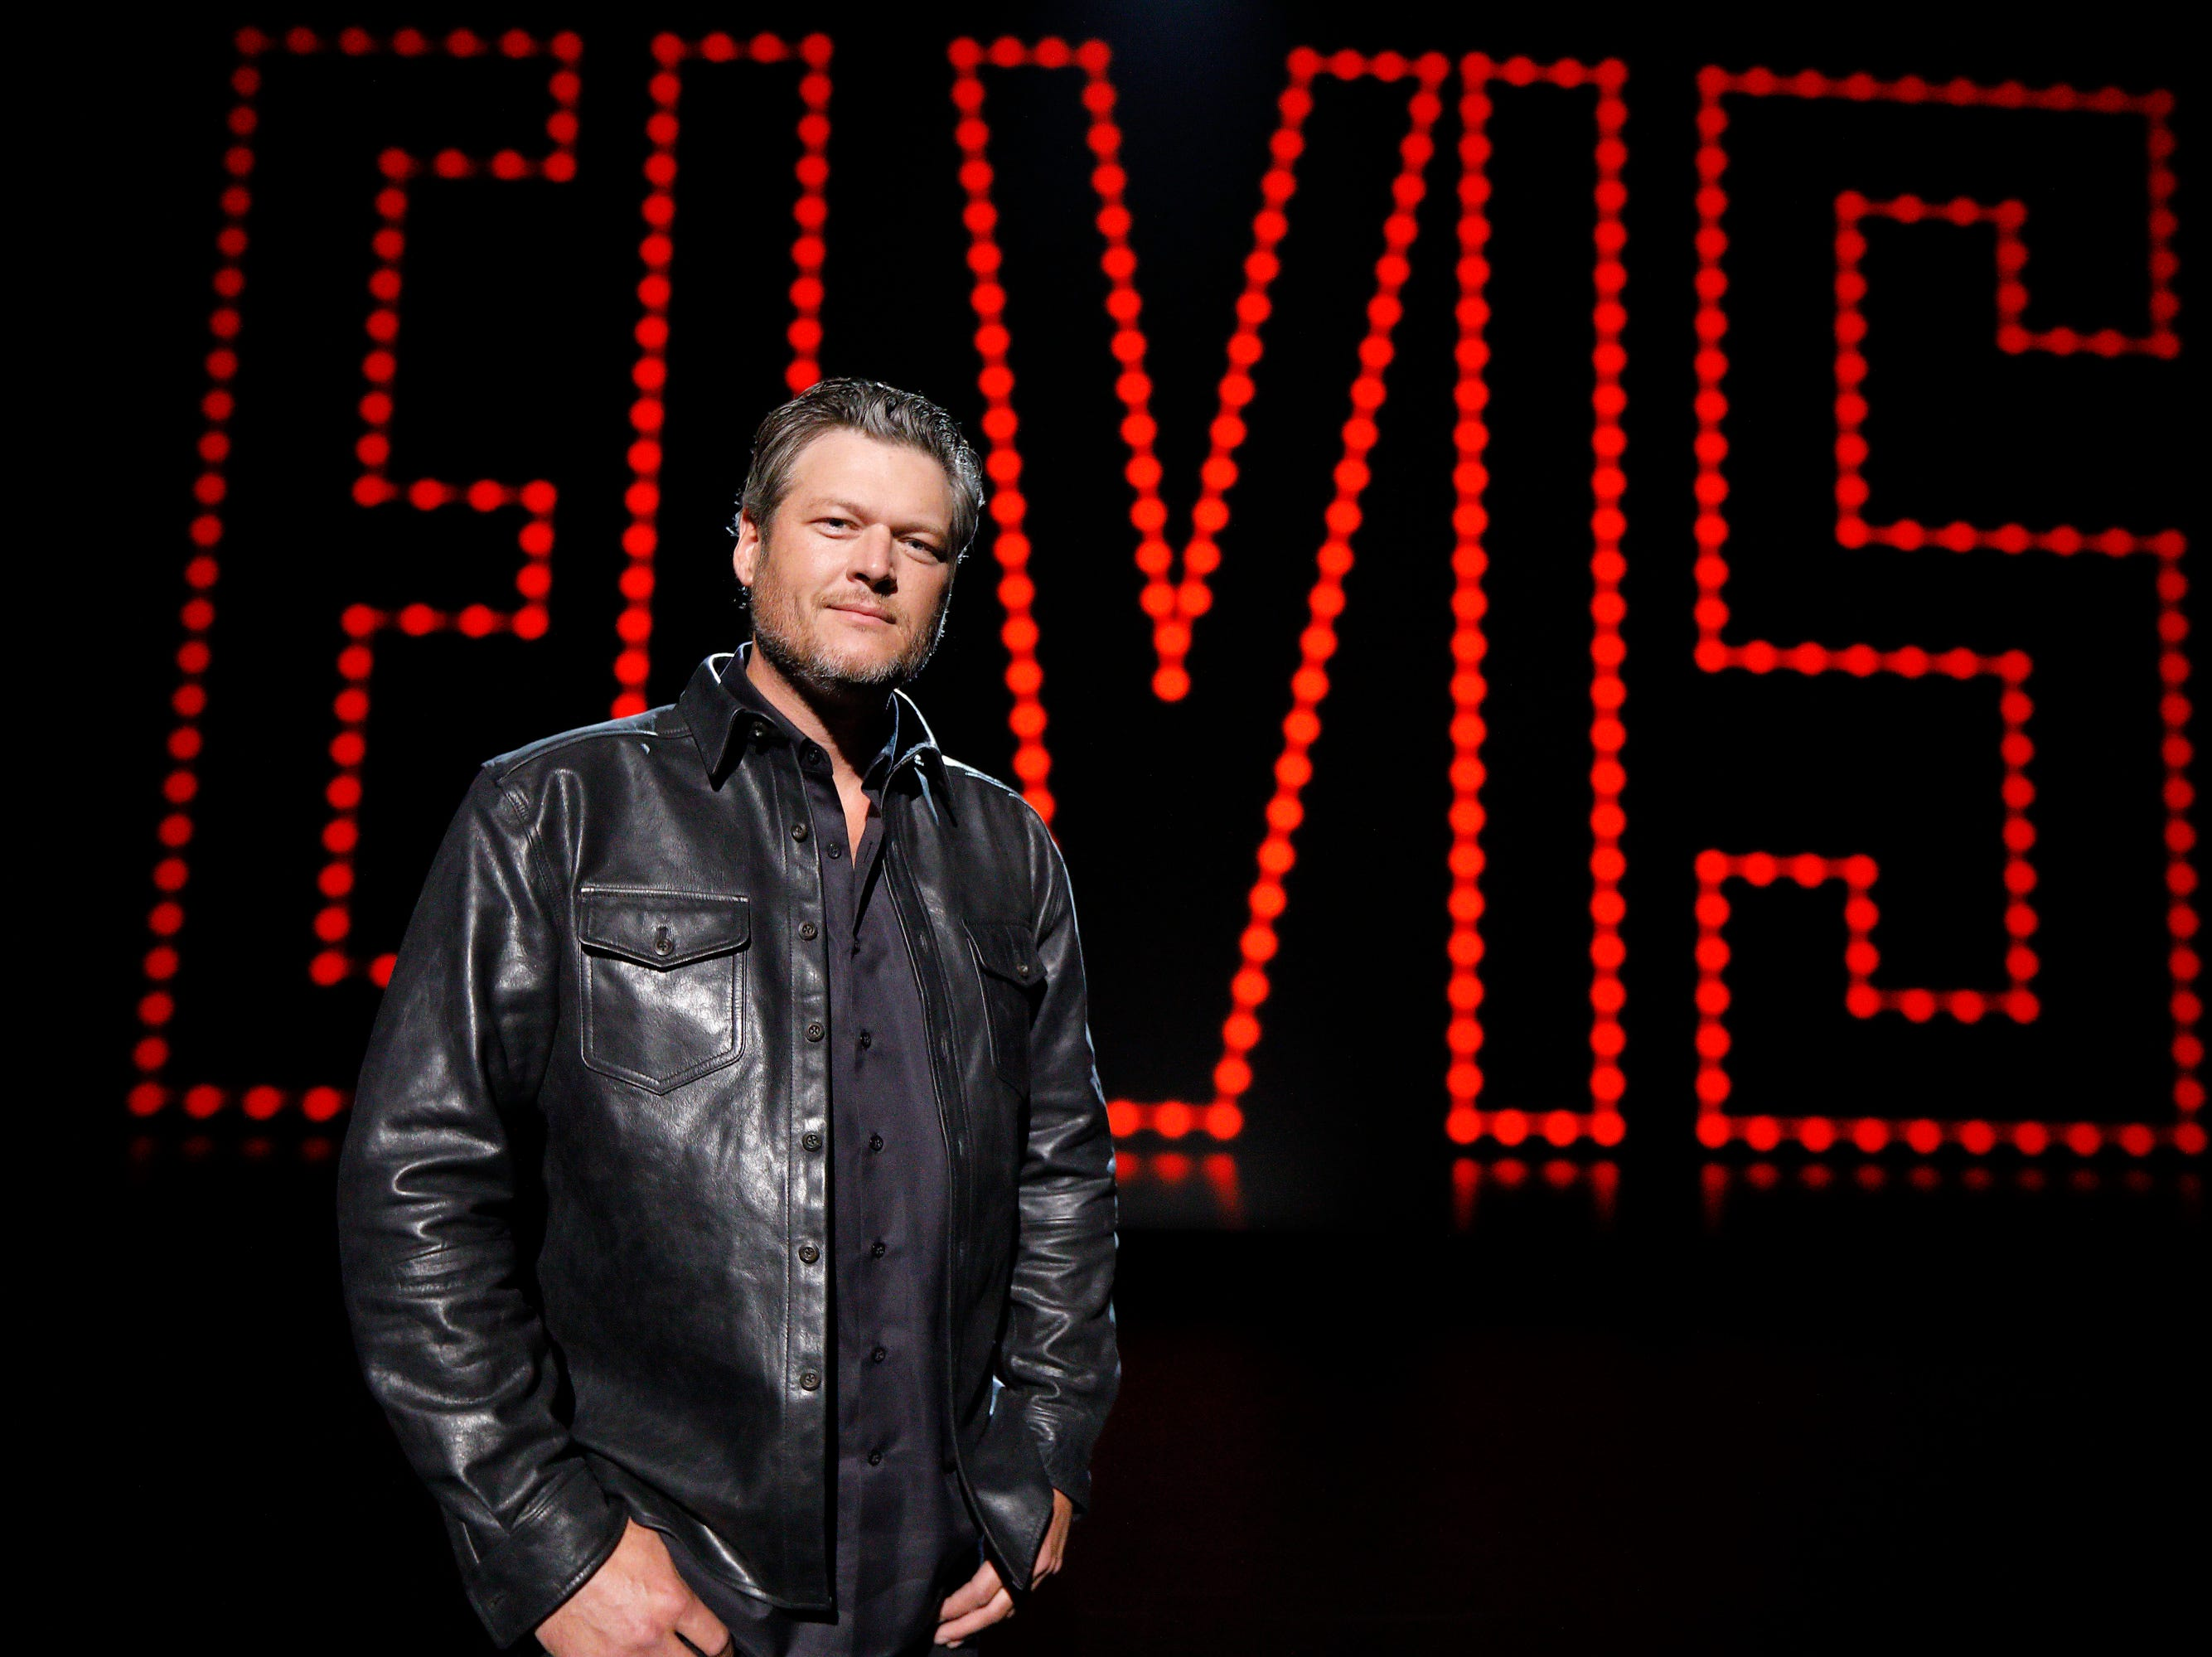 'Elvis All-Star Tribute': Blake Shelton leads star-studded NBC special